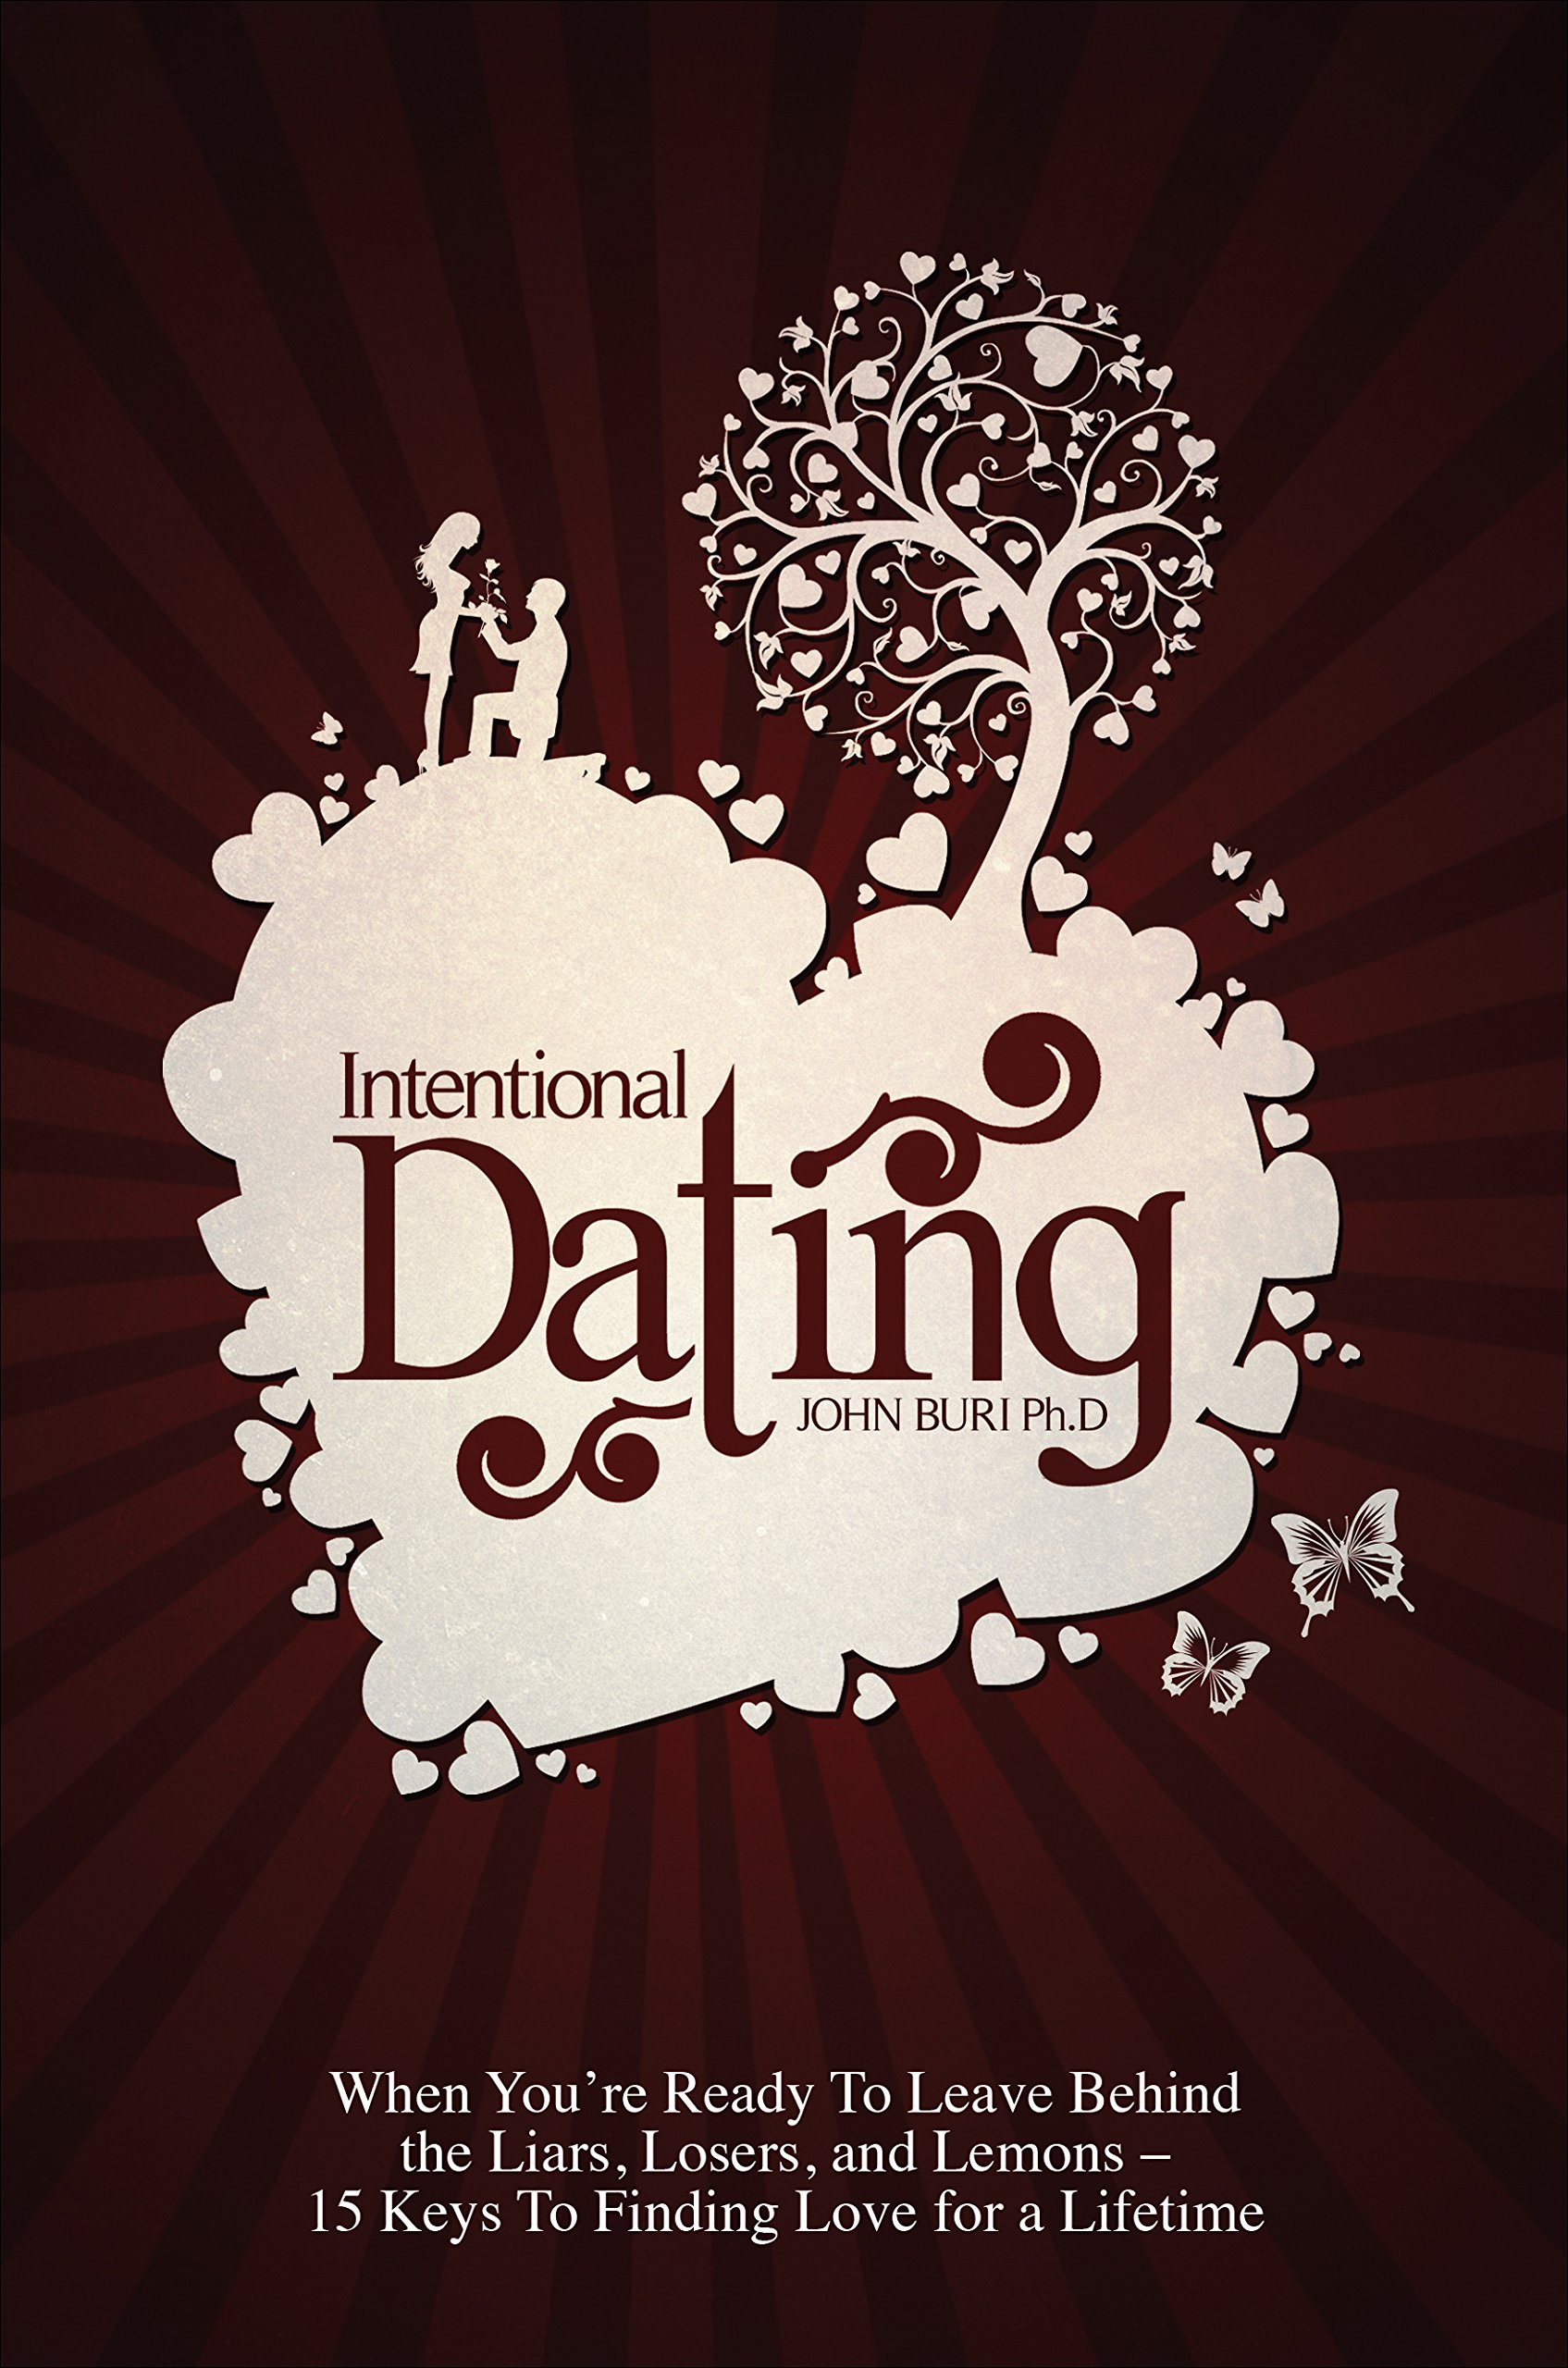 Tips for healthy dating relationships